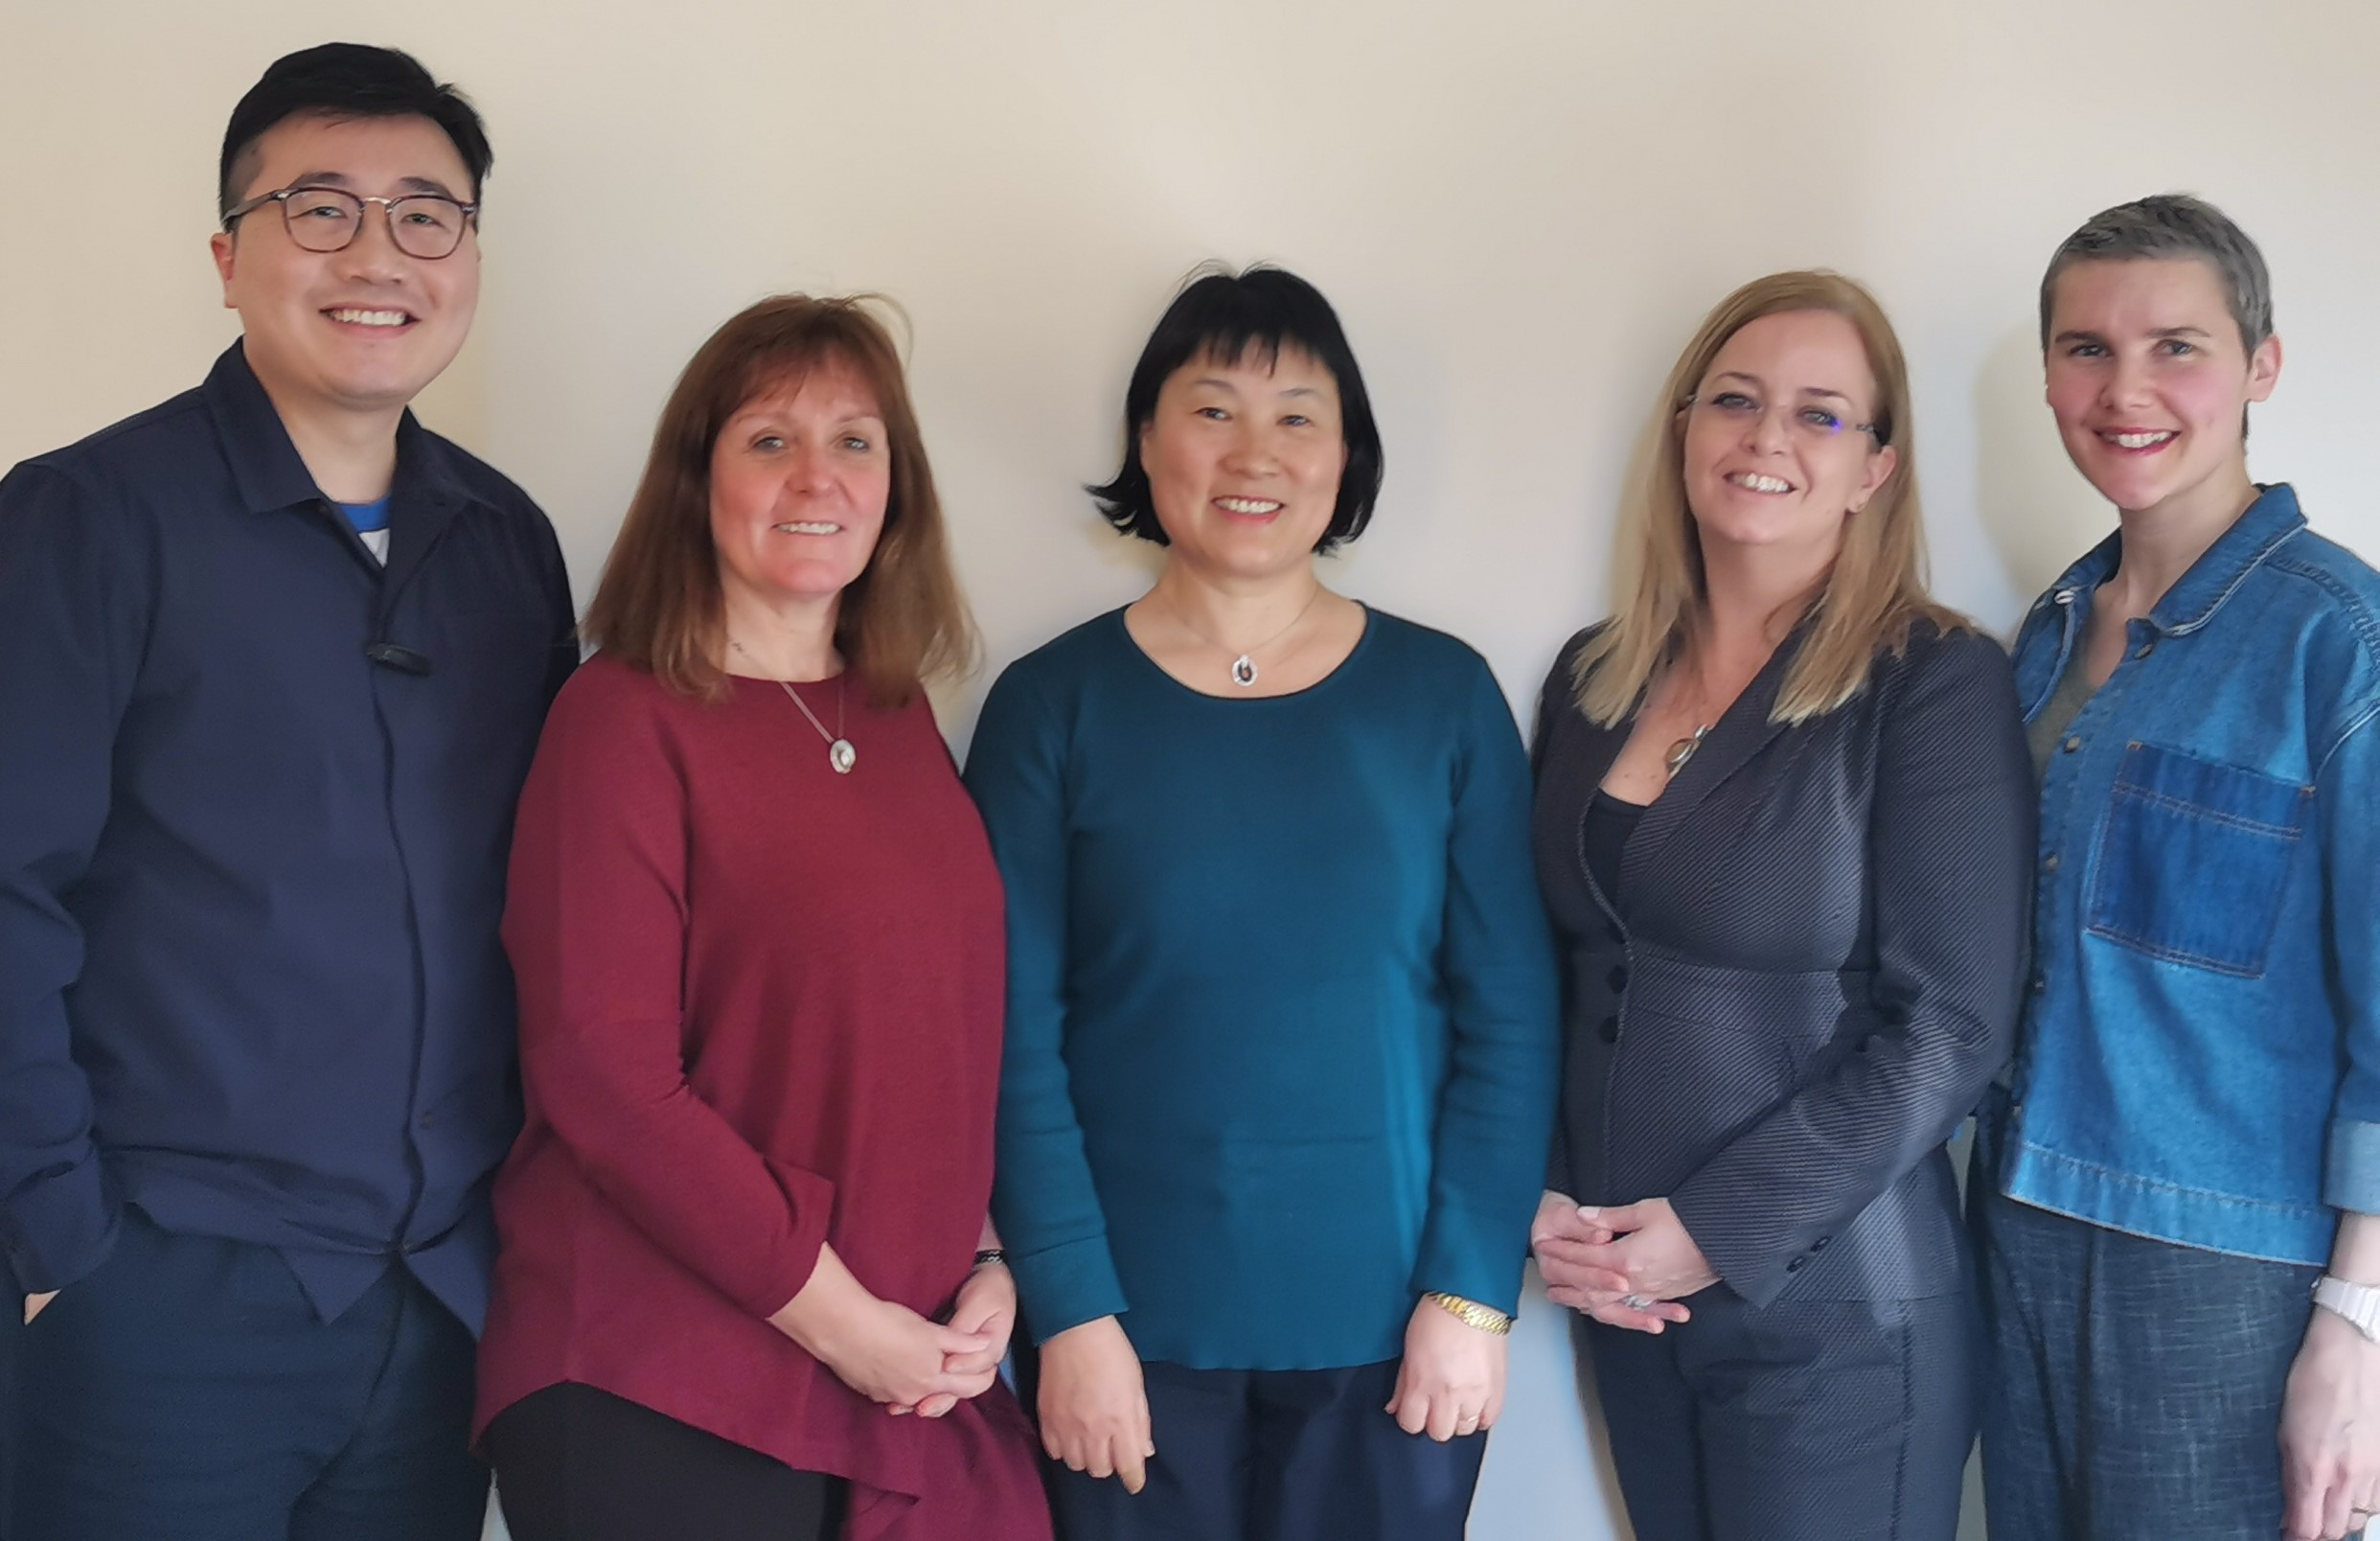 Project Team - Micronutrient Deficiencies and the Double Burden of Childhood Malnutrition in China